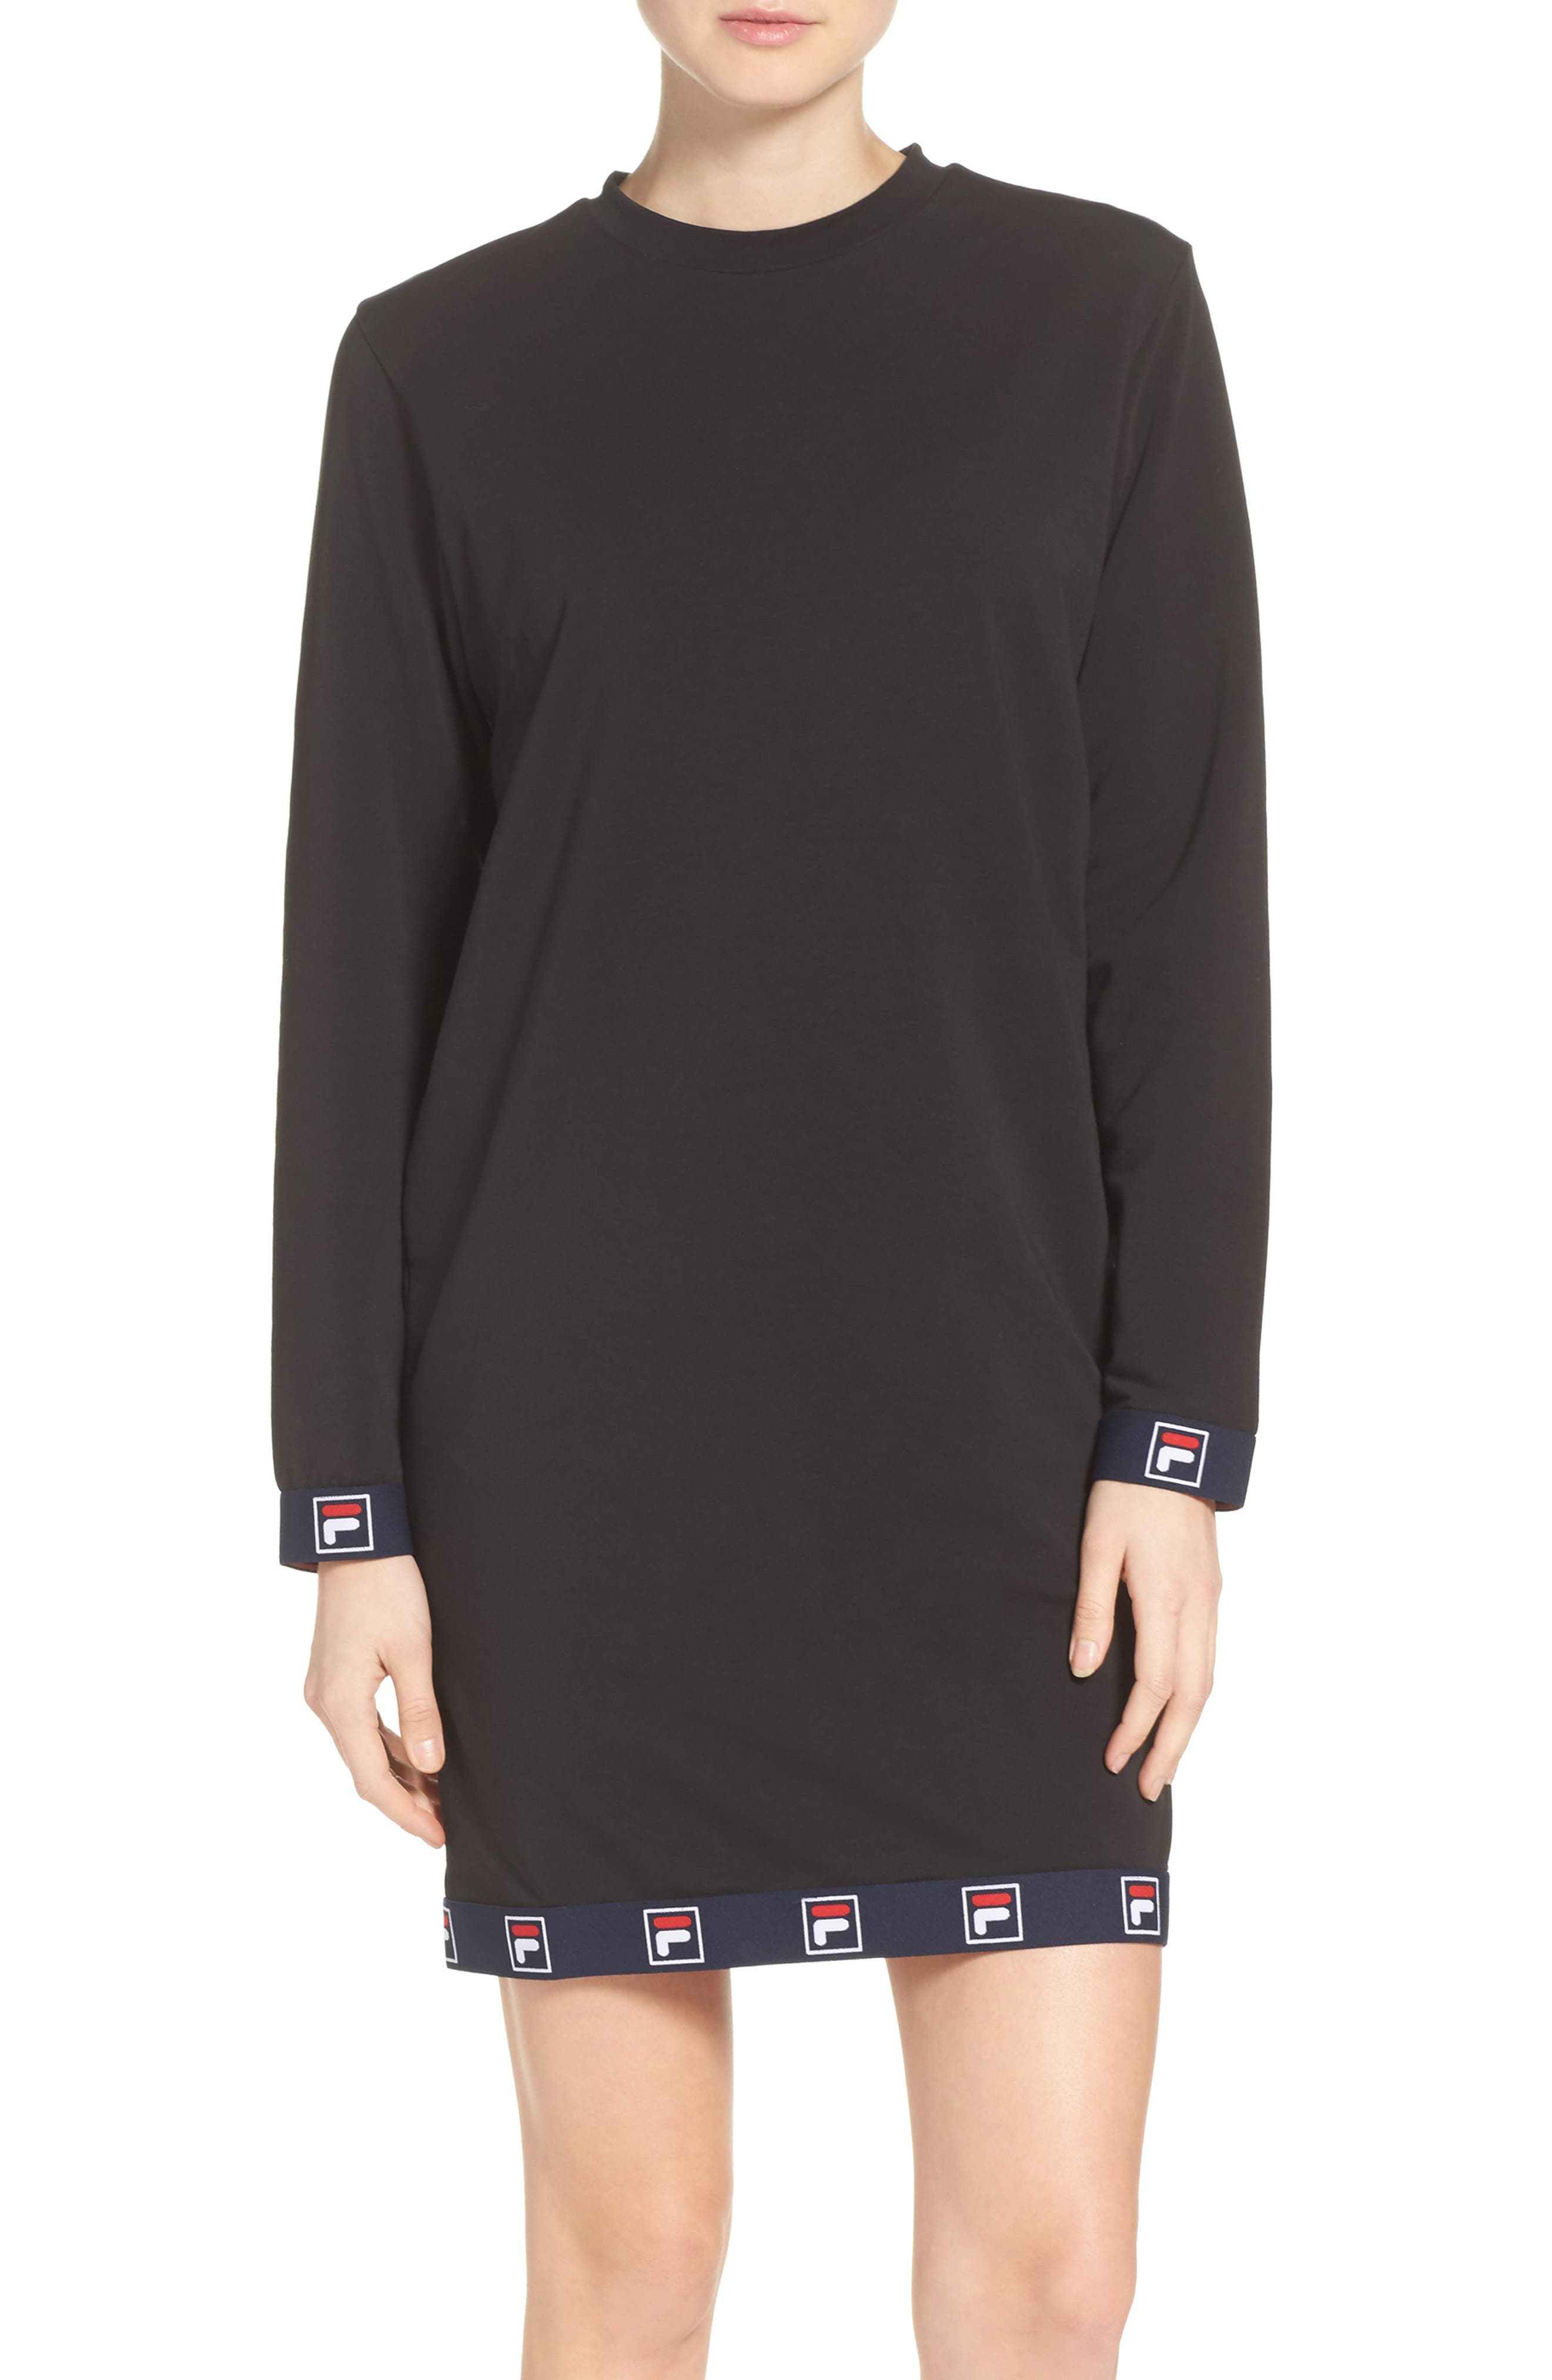 FILA Viola Tennis Dress